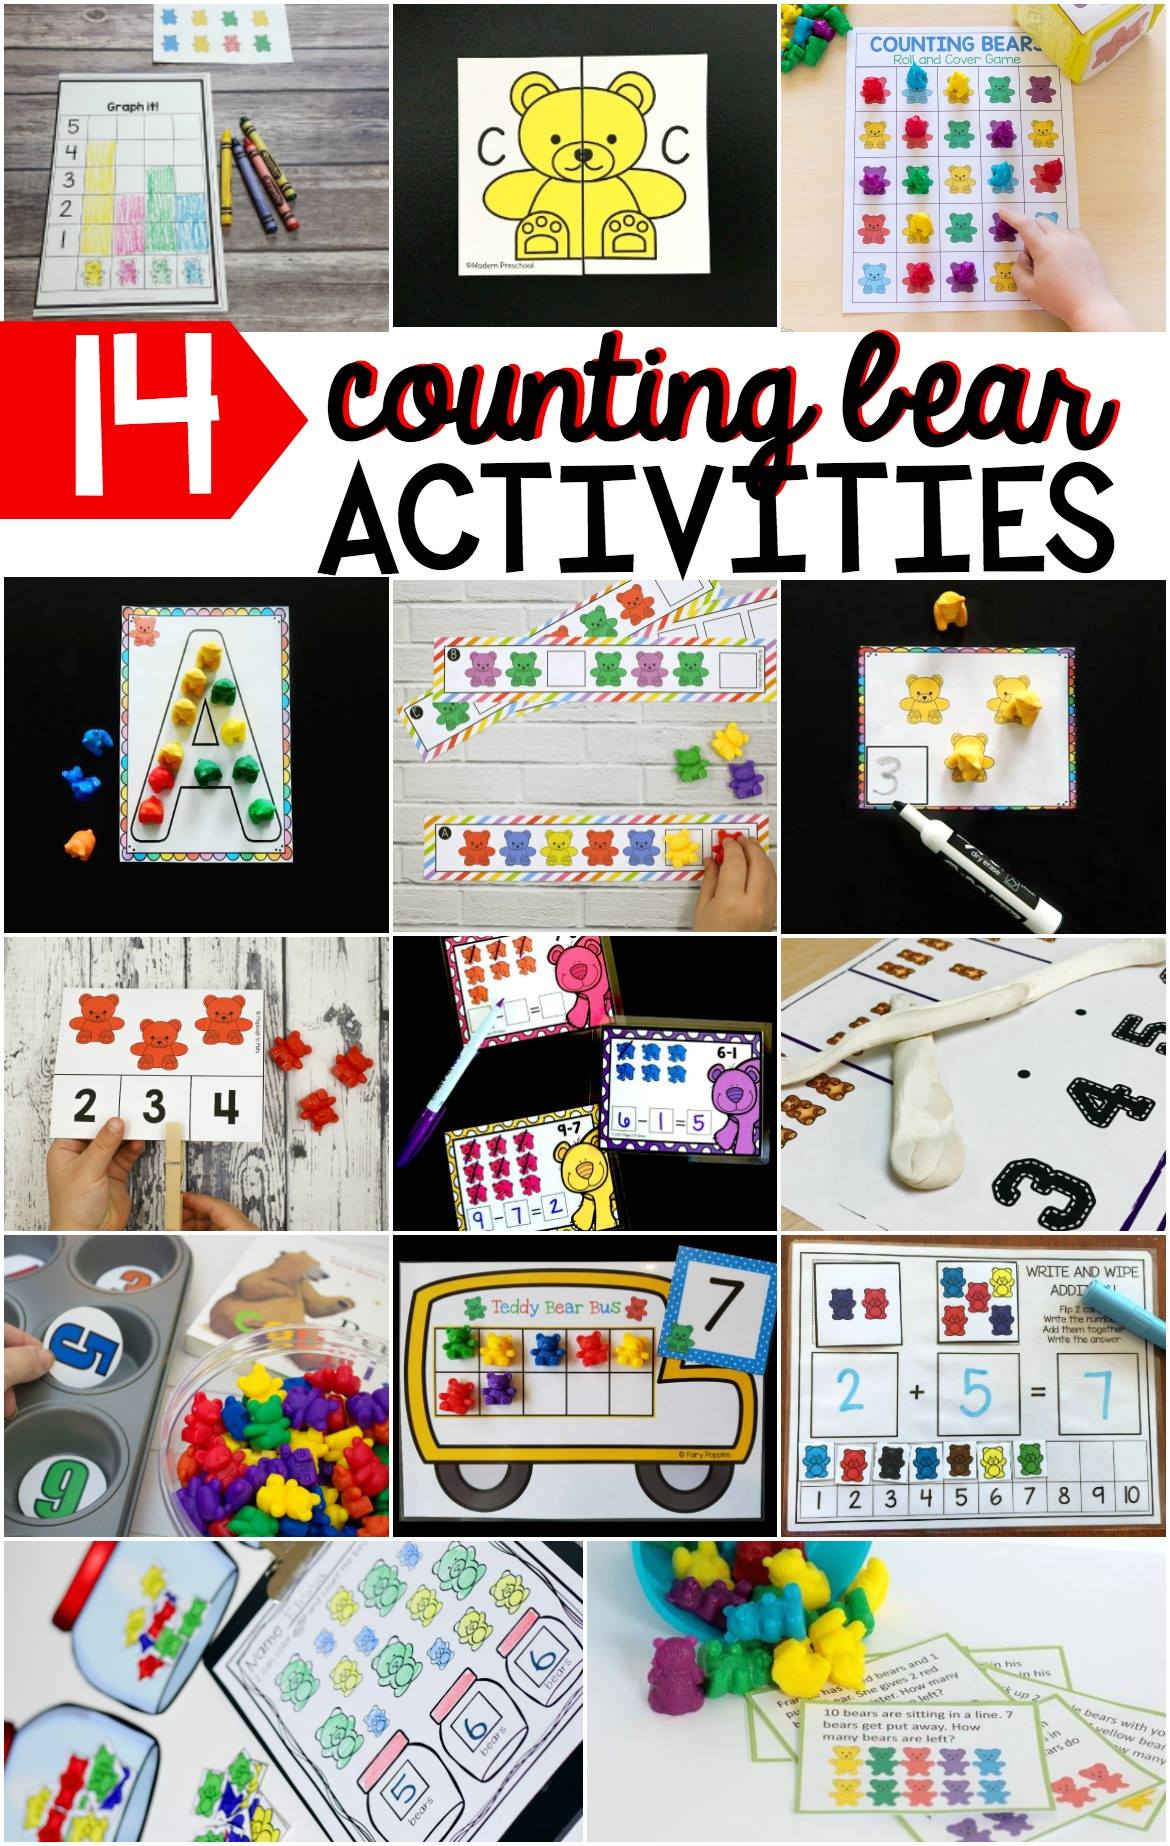 Awesome counting bear activities for kids!